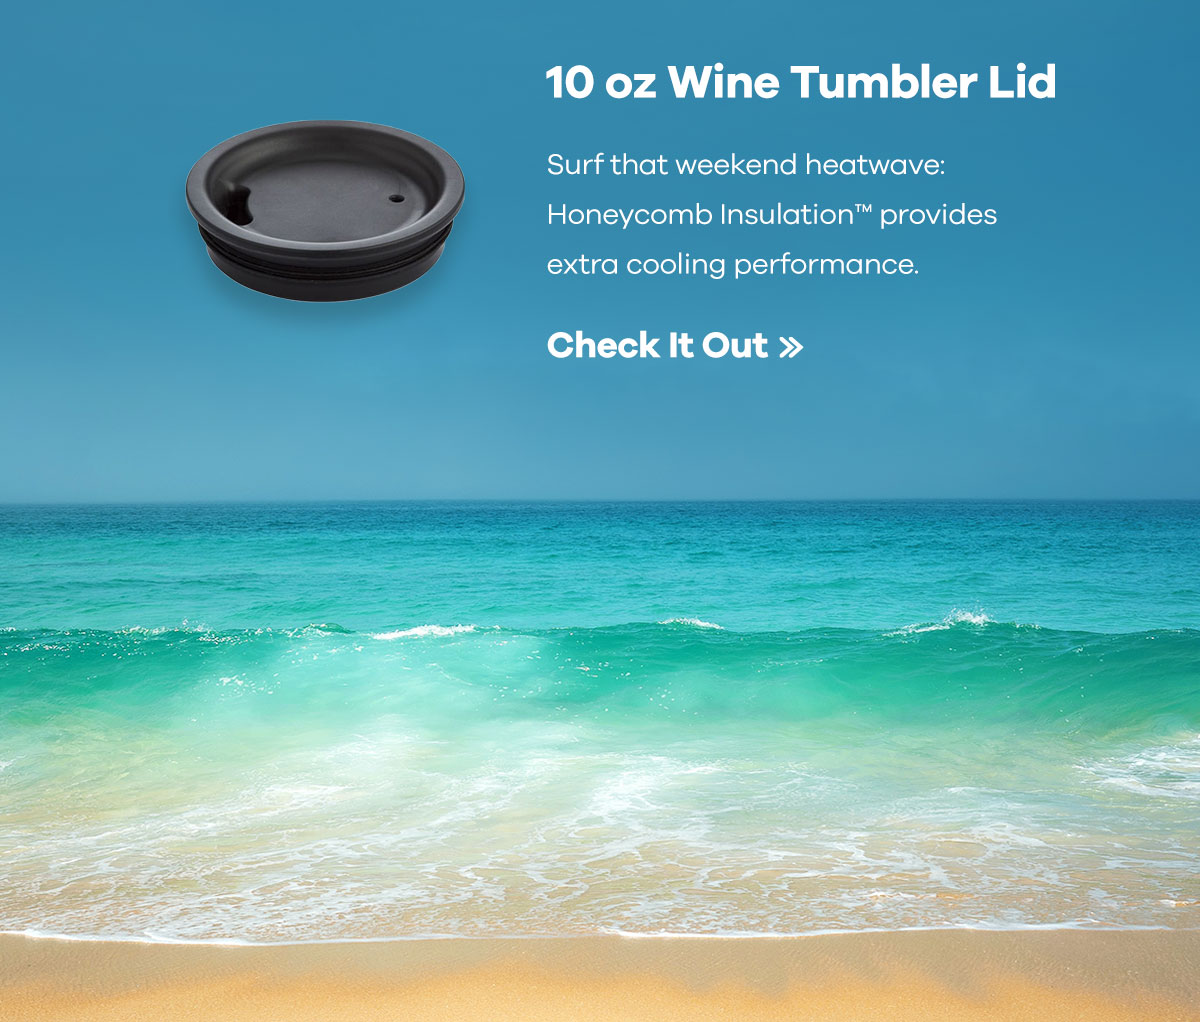 10 oz Wine Tumbler Lid - Surf that weekend heatwave: Honeycomb InsulationT provides extra cooling performance. | Check It Out >>